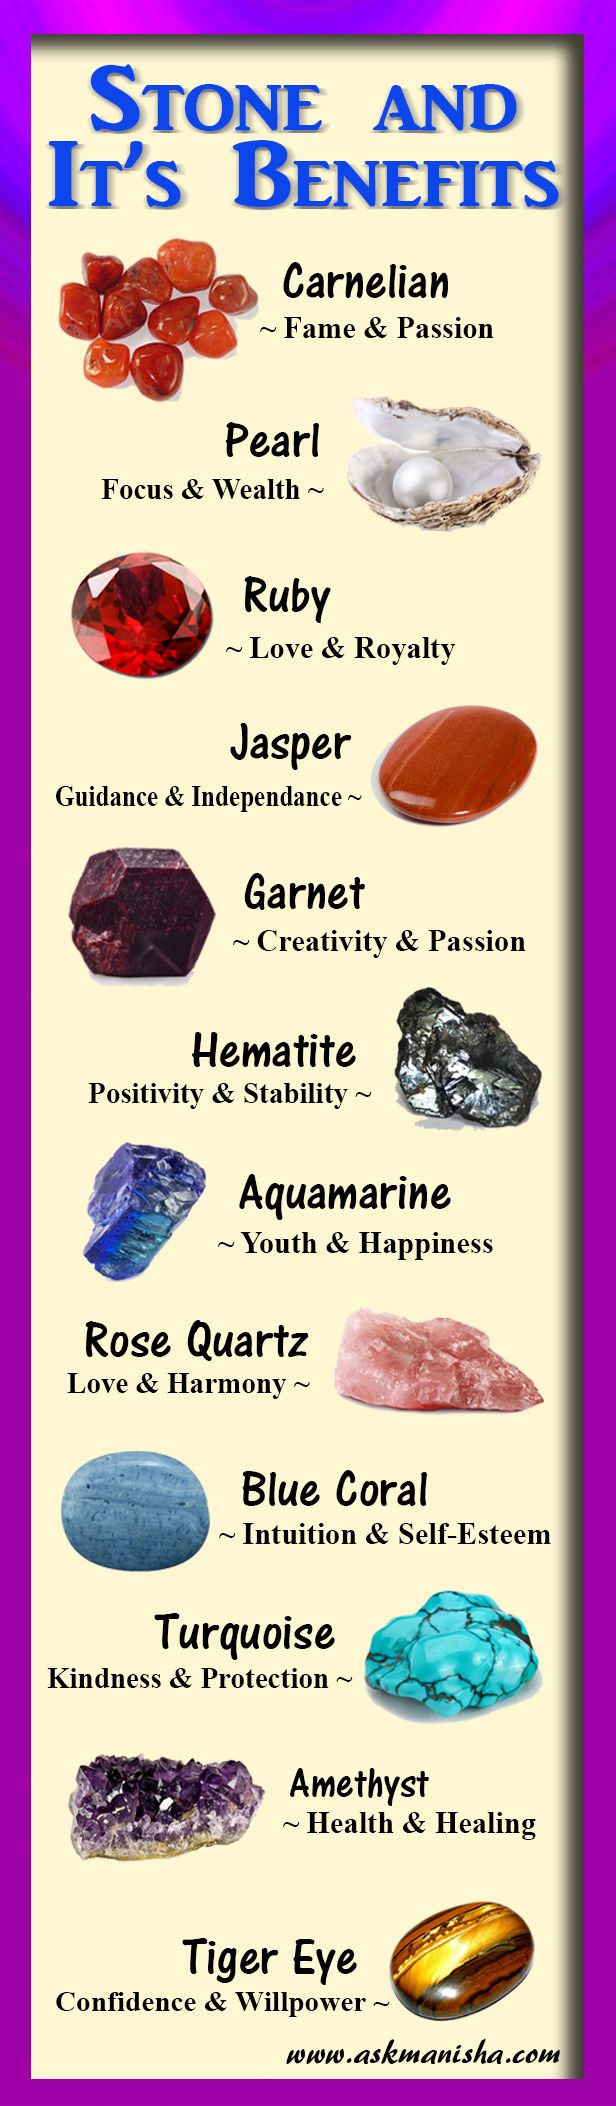 The word Gemstones generally bring the image of beautiful colourful stones in our mind. Some people use the gemstones as ornaments while others use it with planetary implications.  A gemstone is basically a rock or mineral that can be used for jewellery purposes. A natural gemstone is something that is acquired naturally from the earth through mining. Here are some traits of Stones: